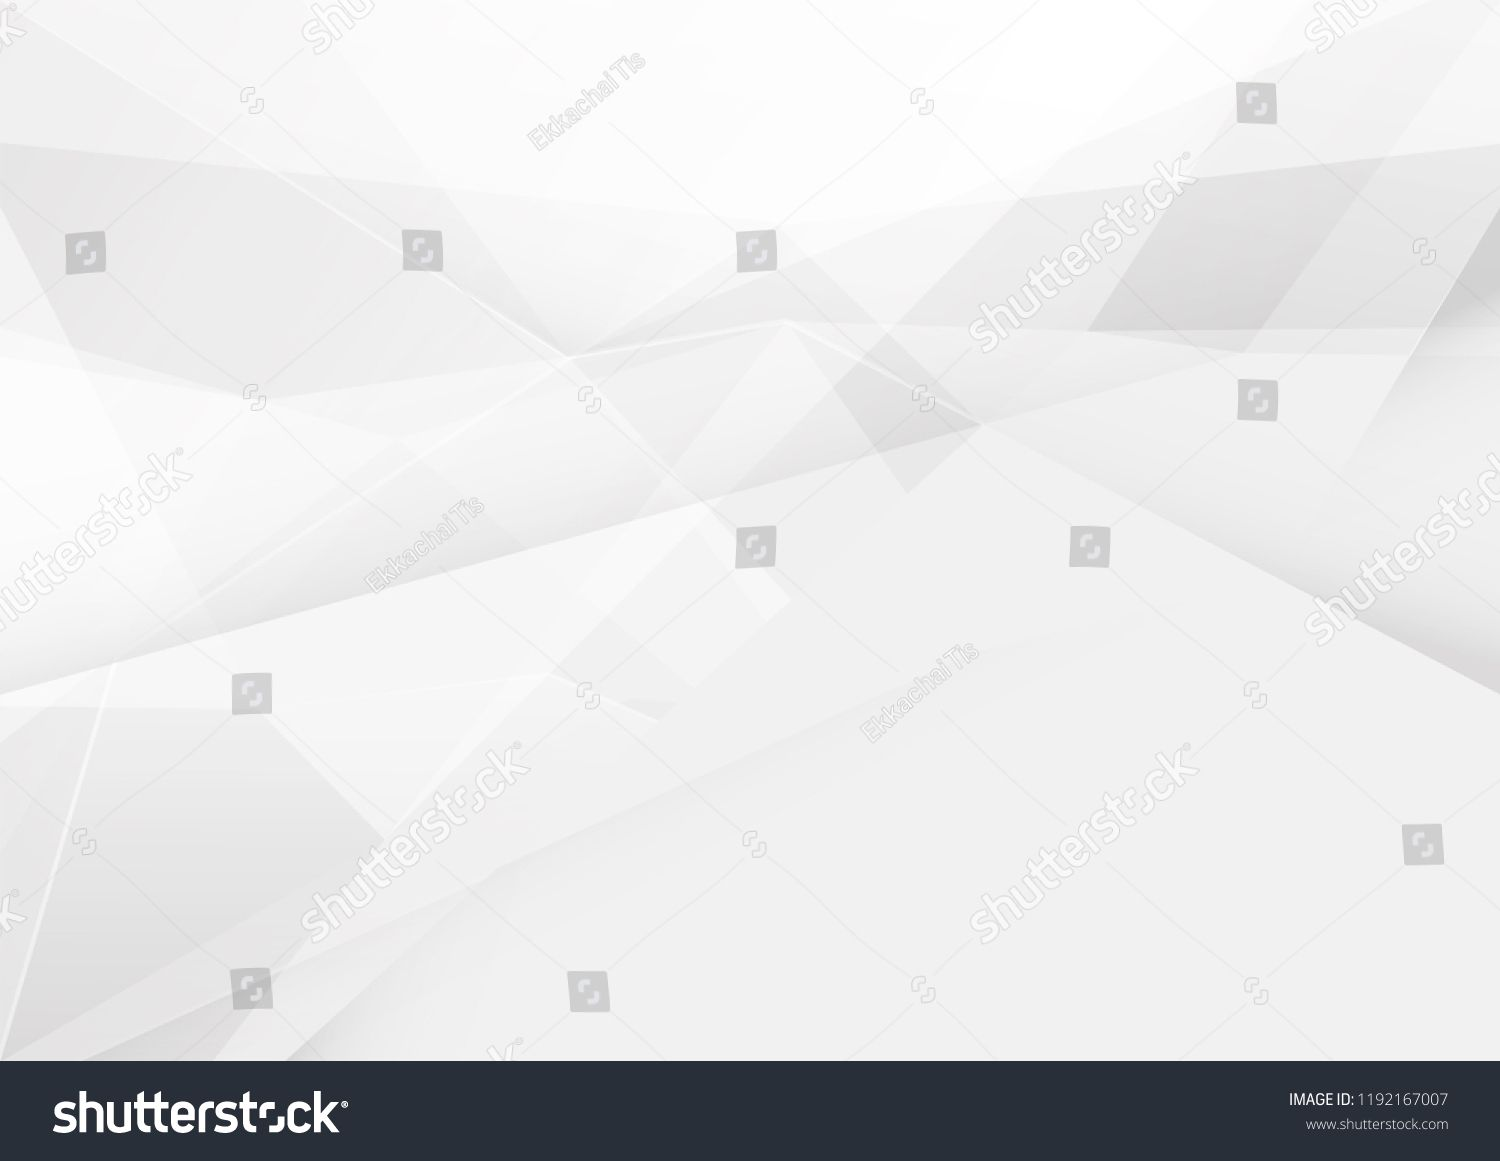 Abstract White Black Gray Color Lines Background Corporate